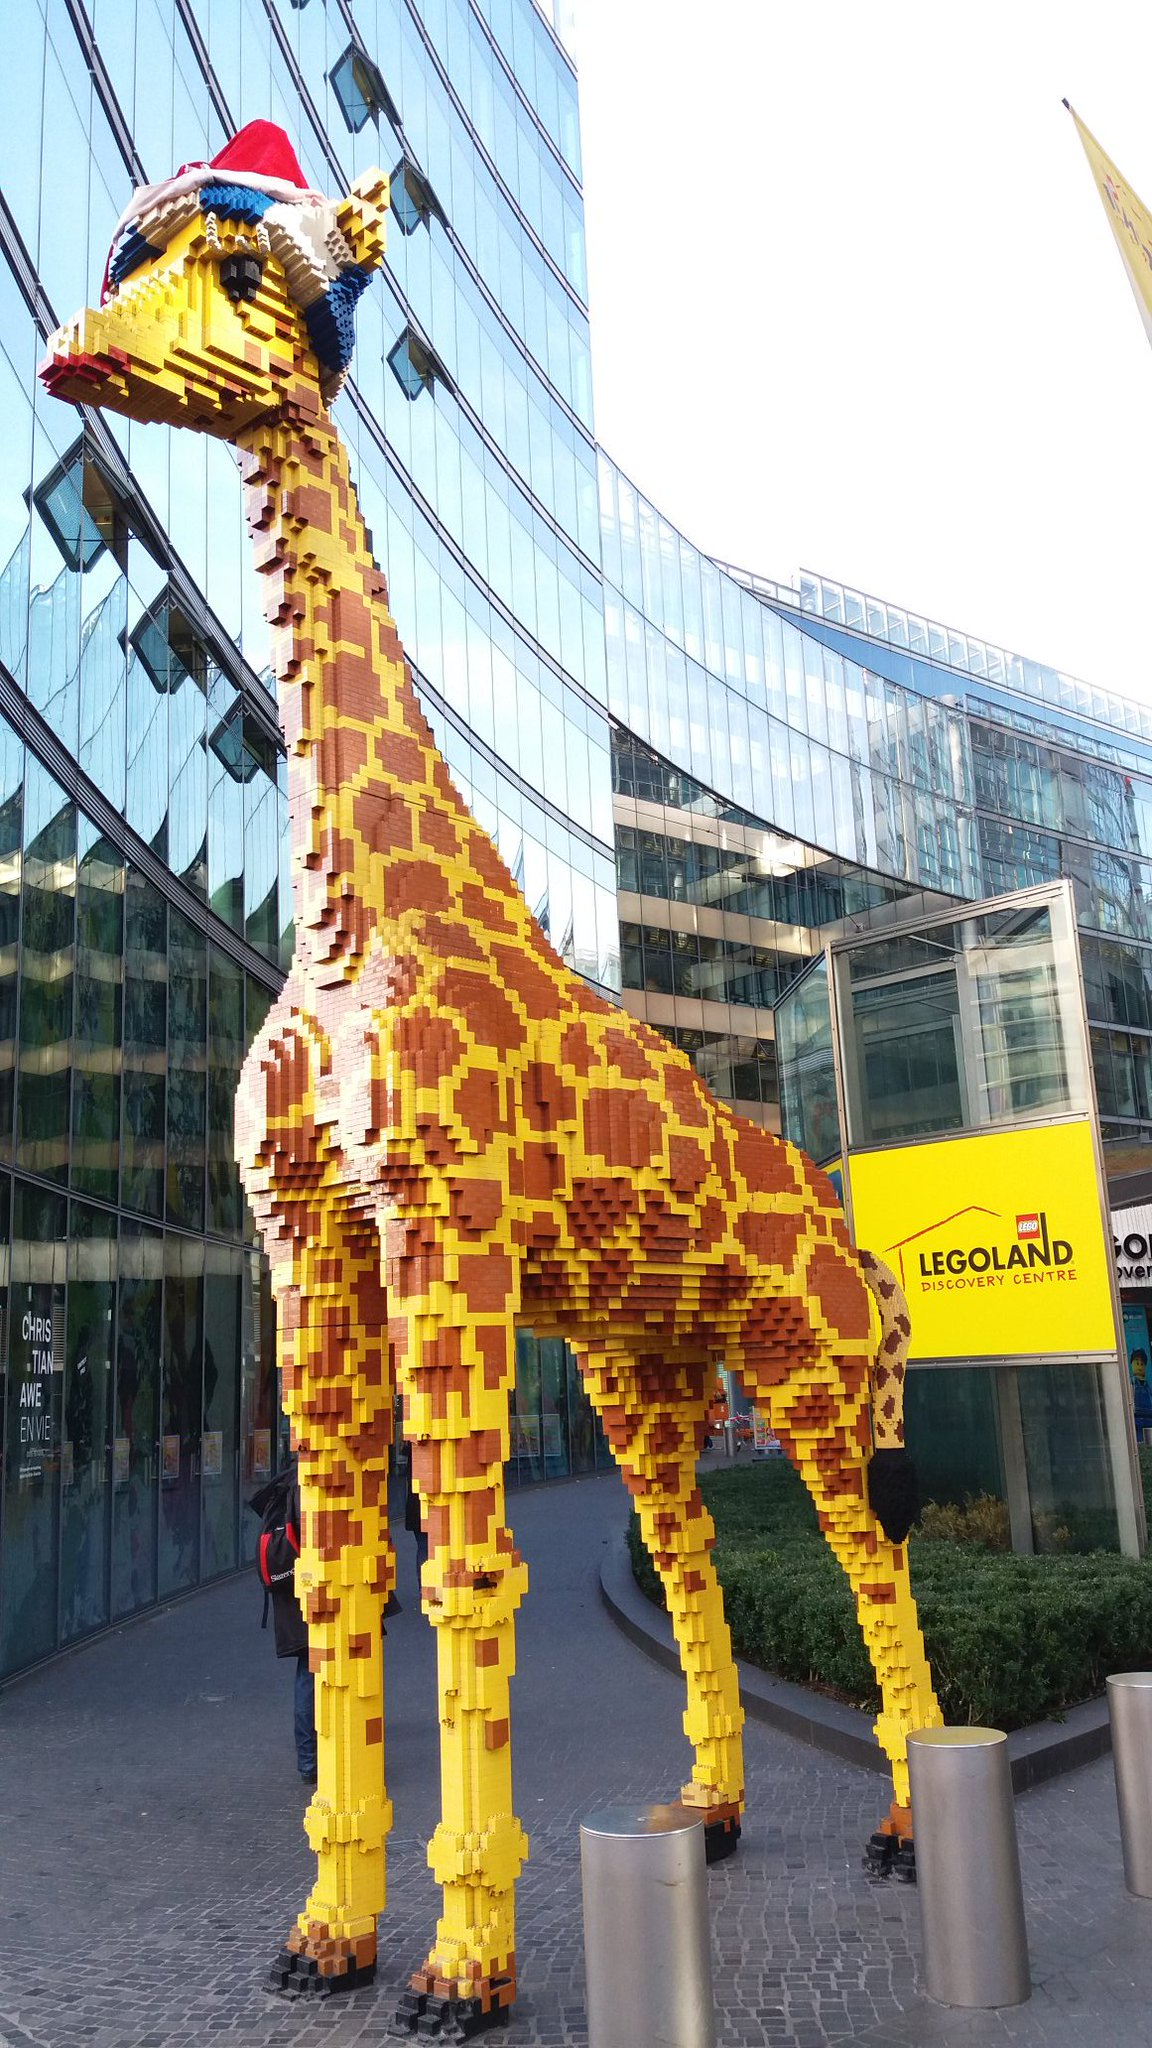 Look out for our tall and handsome volunteer guiding you to the #tsjfair #Berlin https://t.co/5GmyDxgZRf